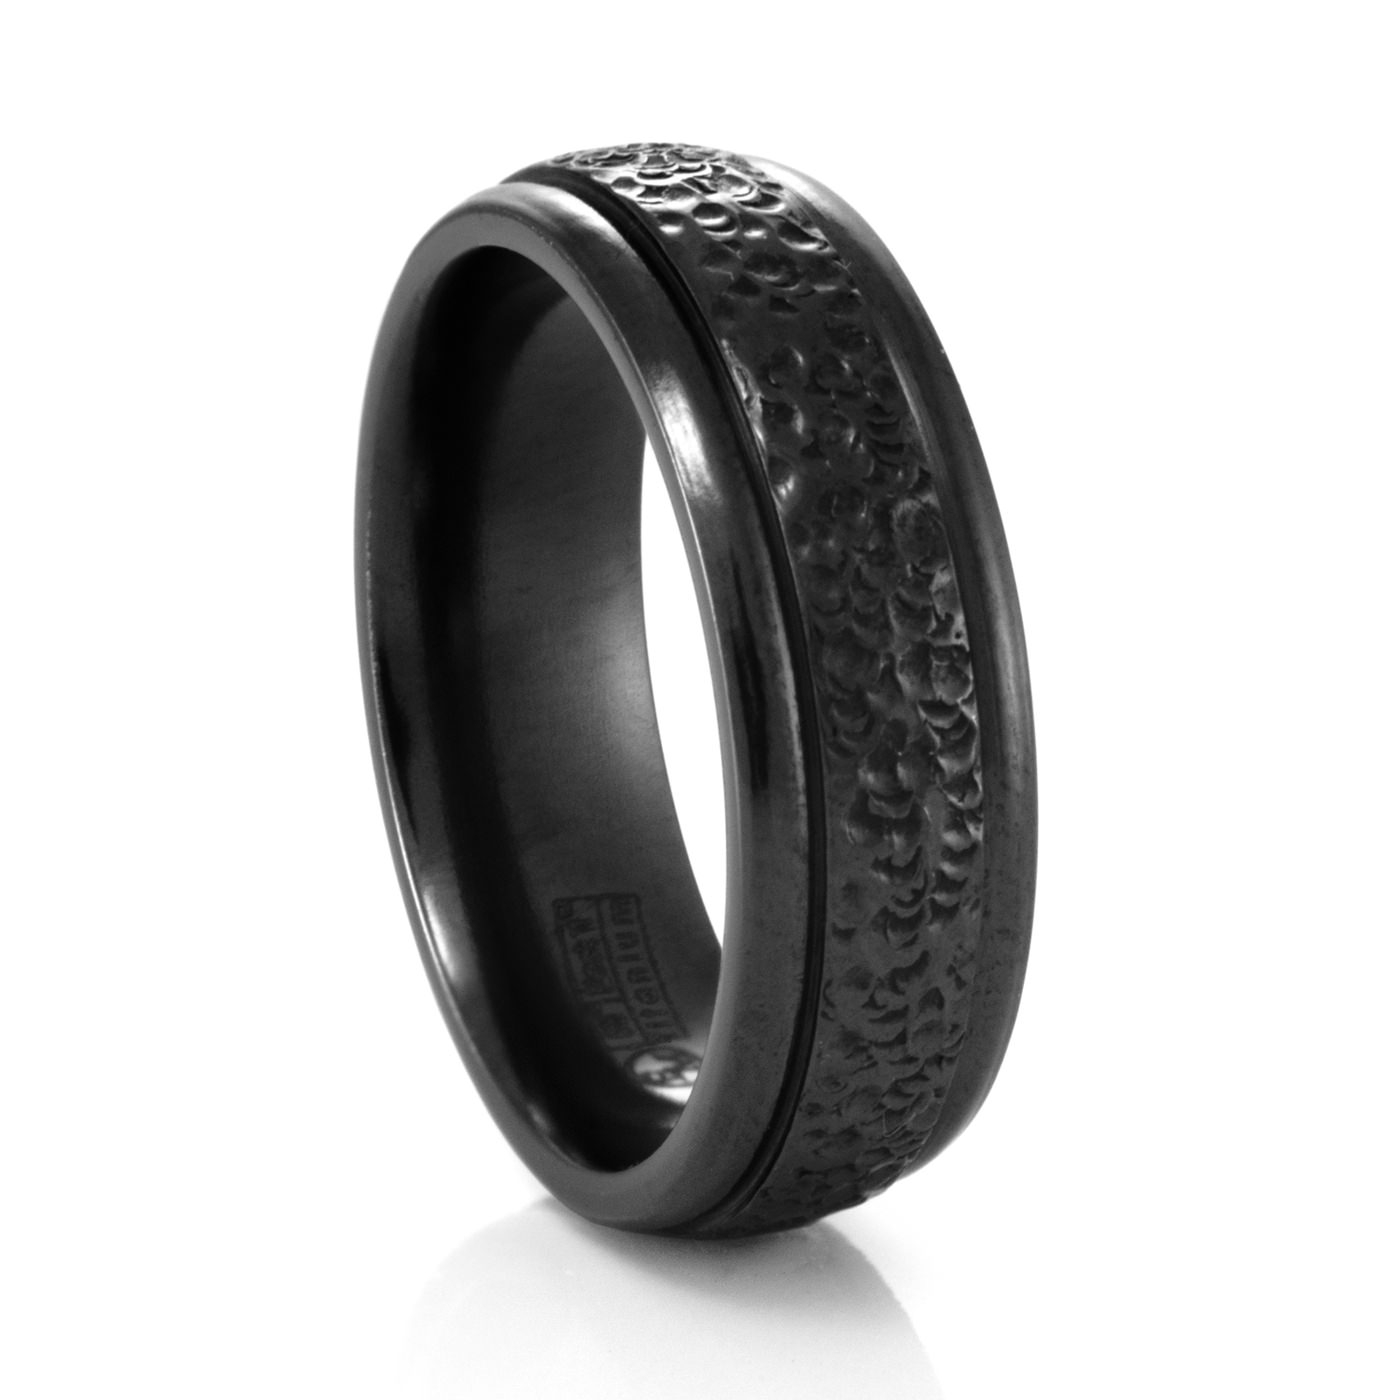 7mm Mens Hammered Finish Ring – Edward Mirell – Black Titanium Rings Pertaining To Titanium Wedding Bands For Him (View 15 of 15)